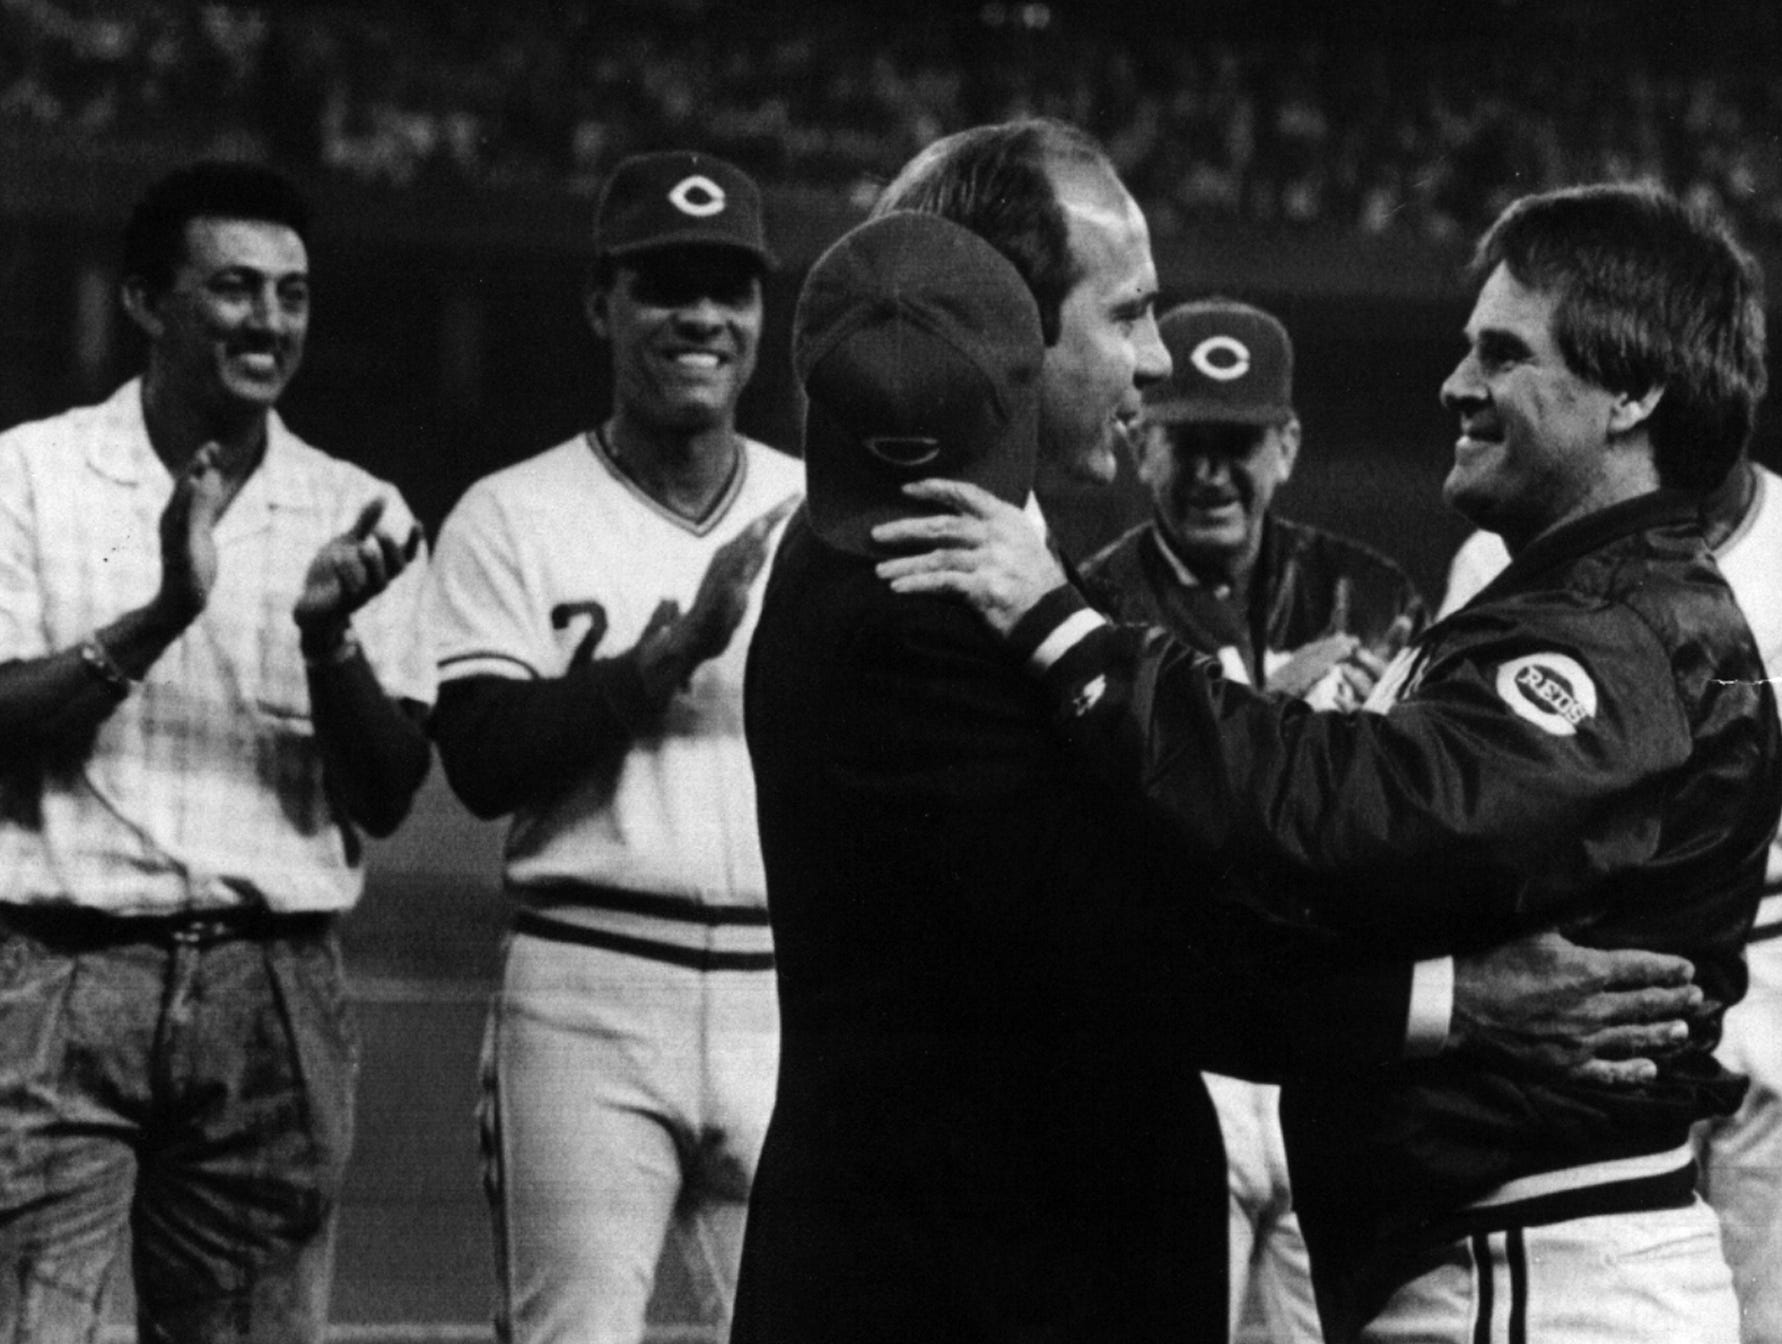 AUGUST 19, 1989: Hall of Famer Johnny Bench greets former teammate Pete Rose as three of the former teammates from the Reds' 1970s teams. Dave Concepcion, Tony Perez, and tony Helms, look on during appreciation ceremonies for Bench Friday, 8/18/89, at Riverfront Stadium. See story, page D-4. The Enquirer/Gary Landers scanned August 7, 2013